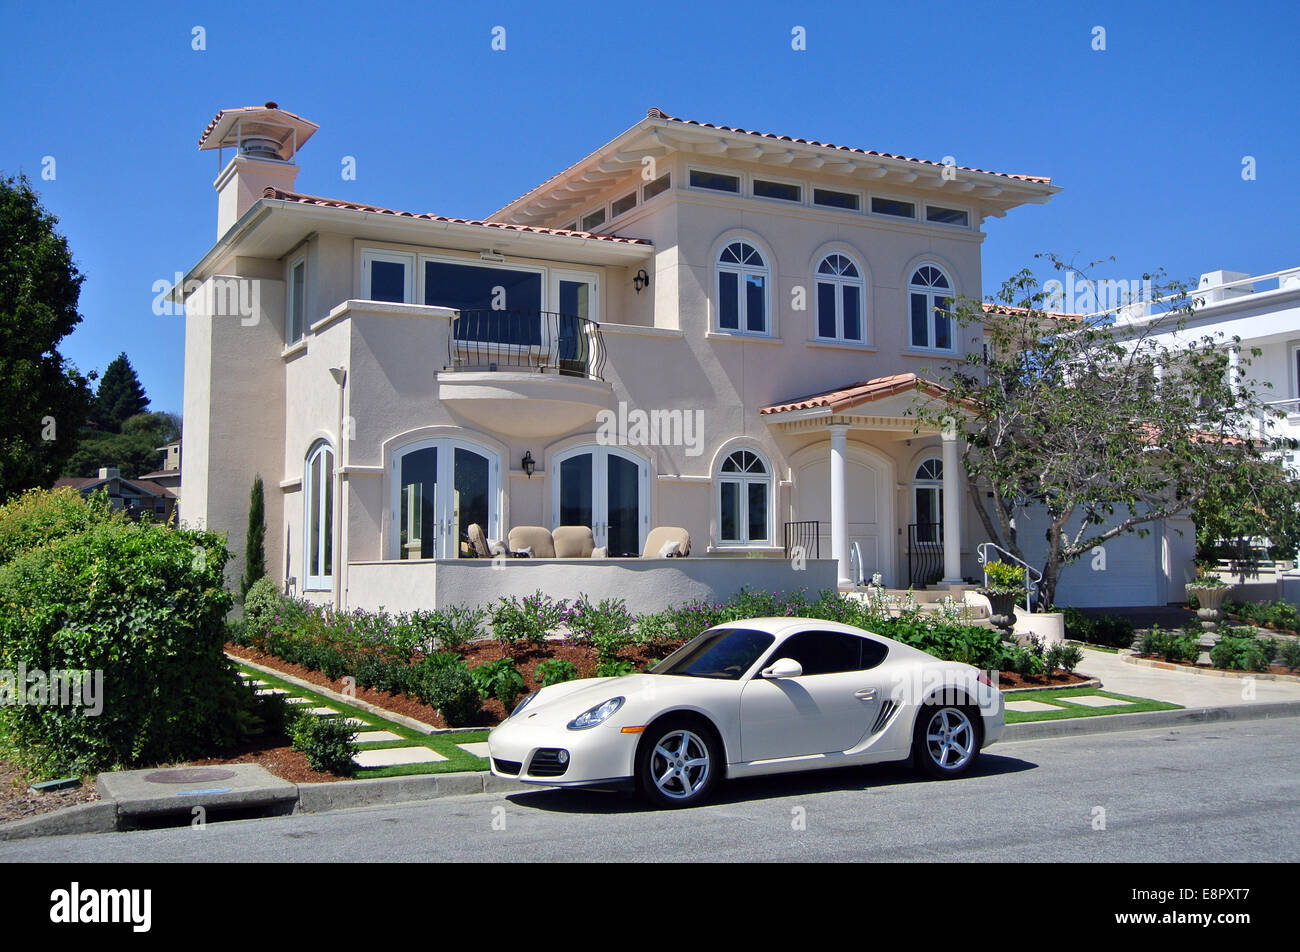 luxury sports car parked in front of luxury Bay front home in Mill Valley California Stock Photo